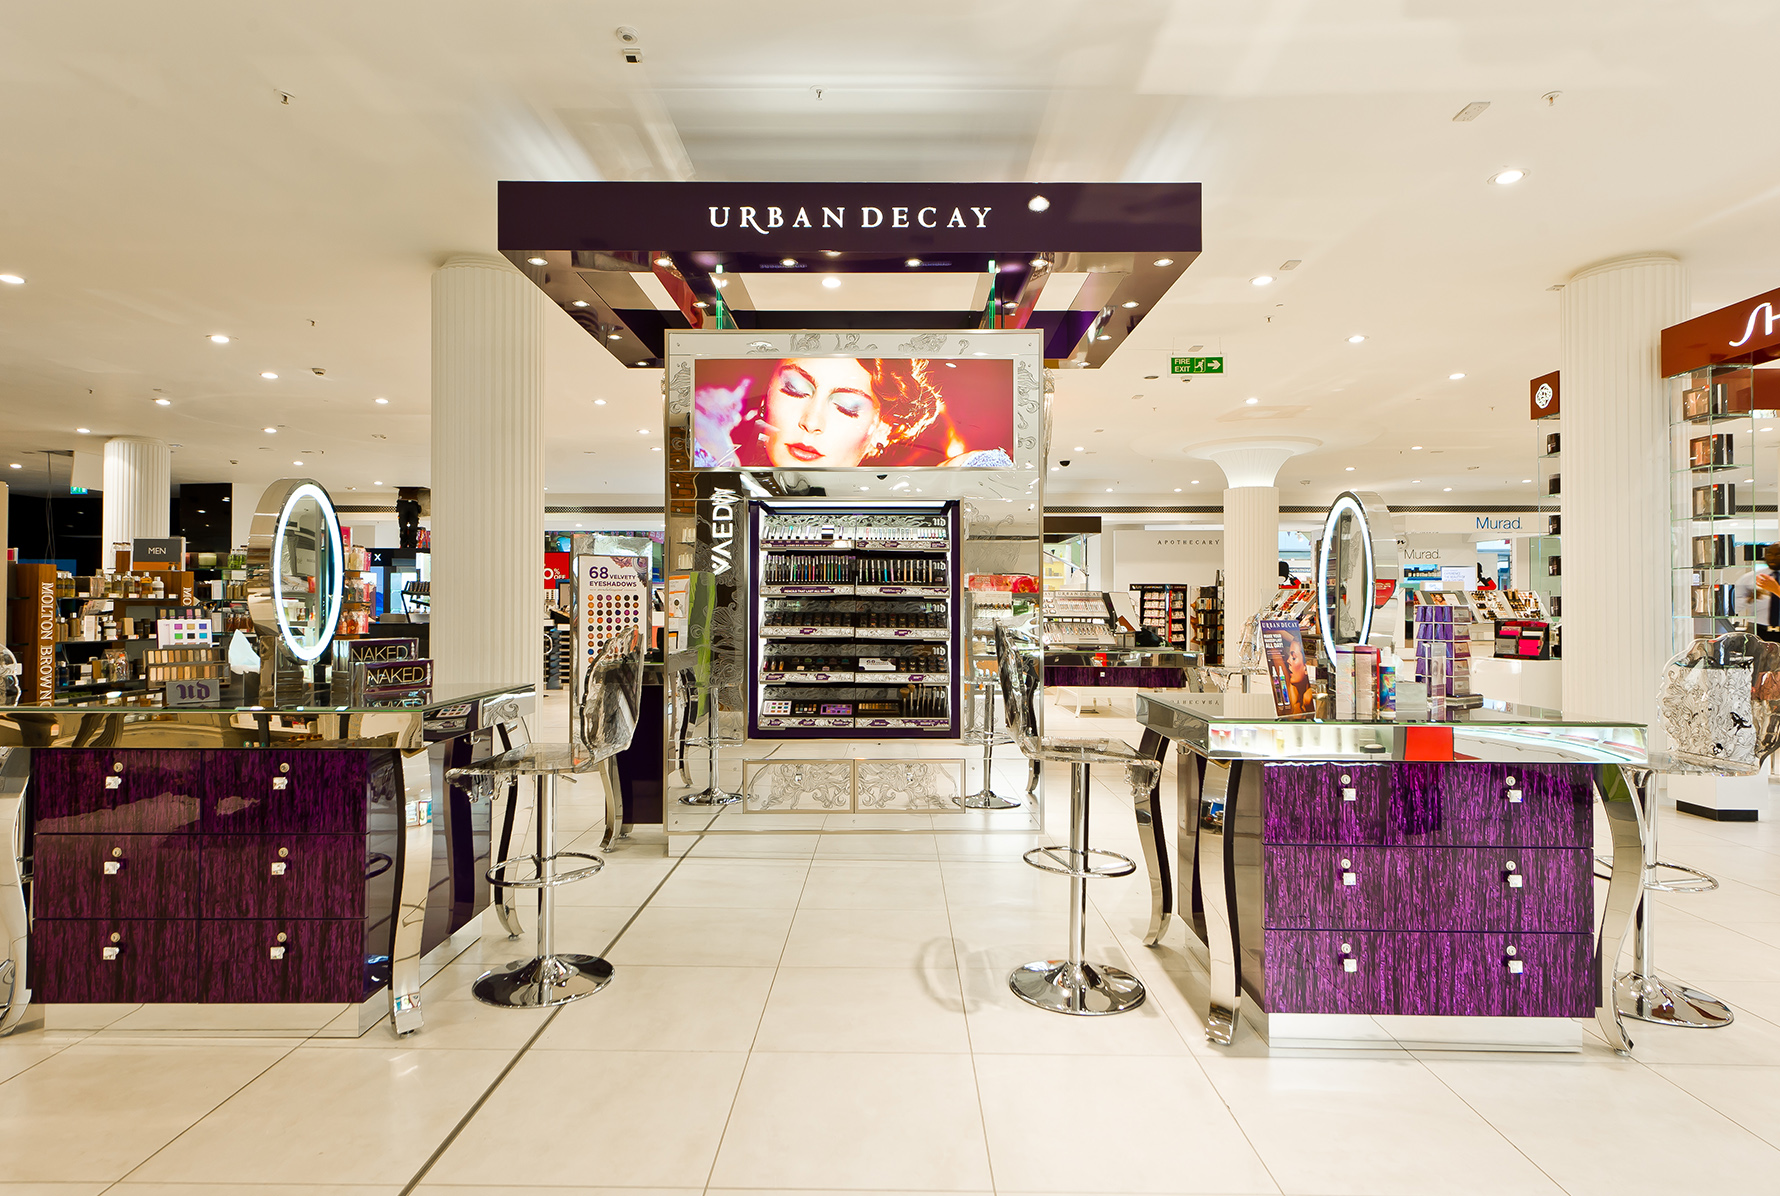 Urban Decay in House of Fraser - London